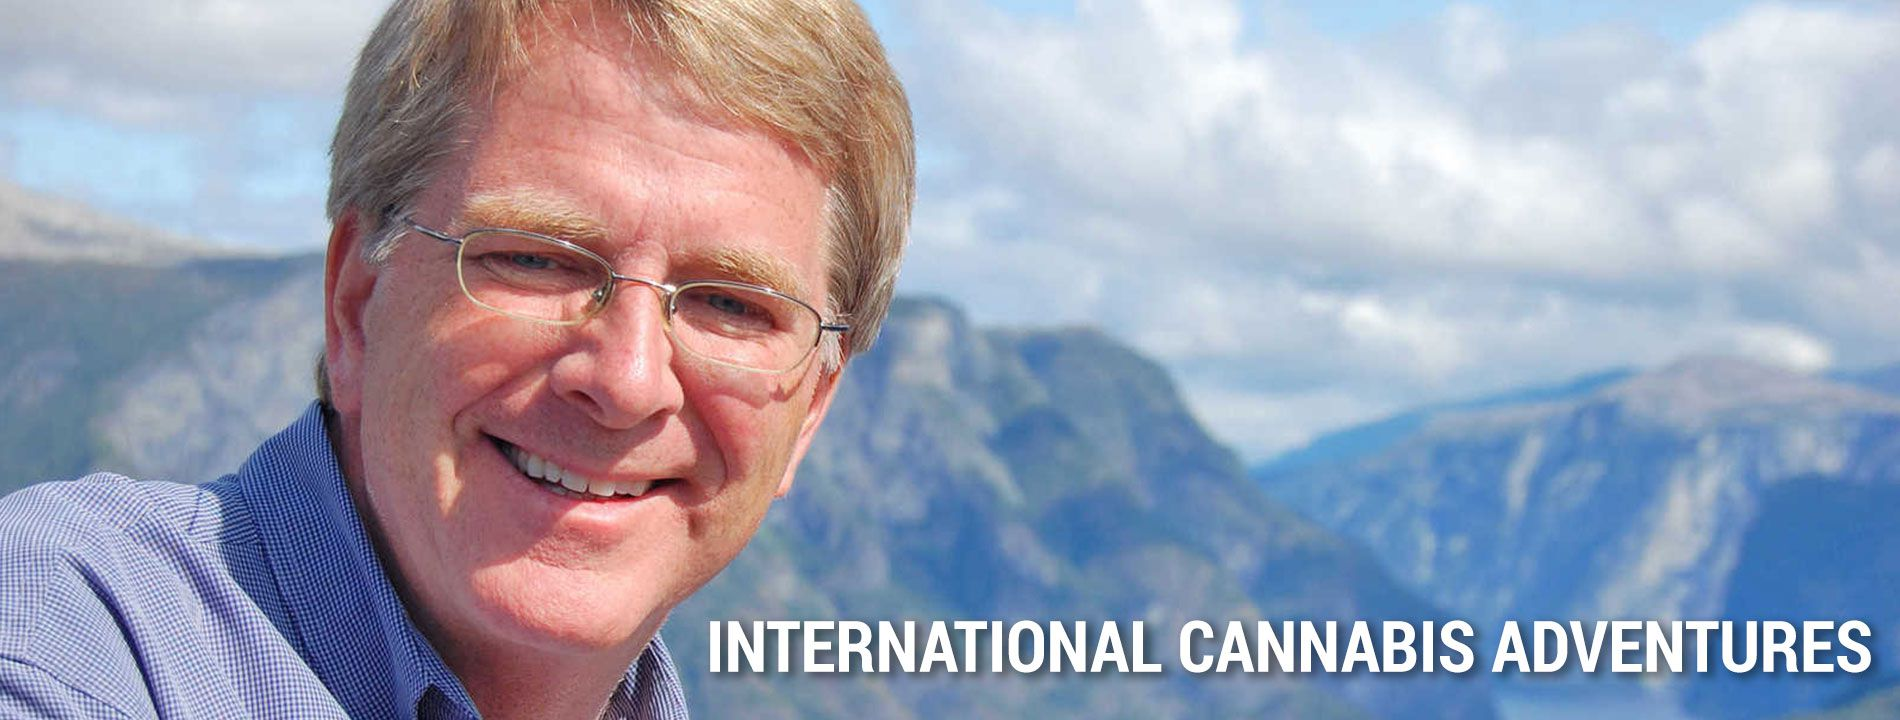 Rick Steves at the Virtual International Cannabis Business Conference speakers